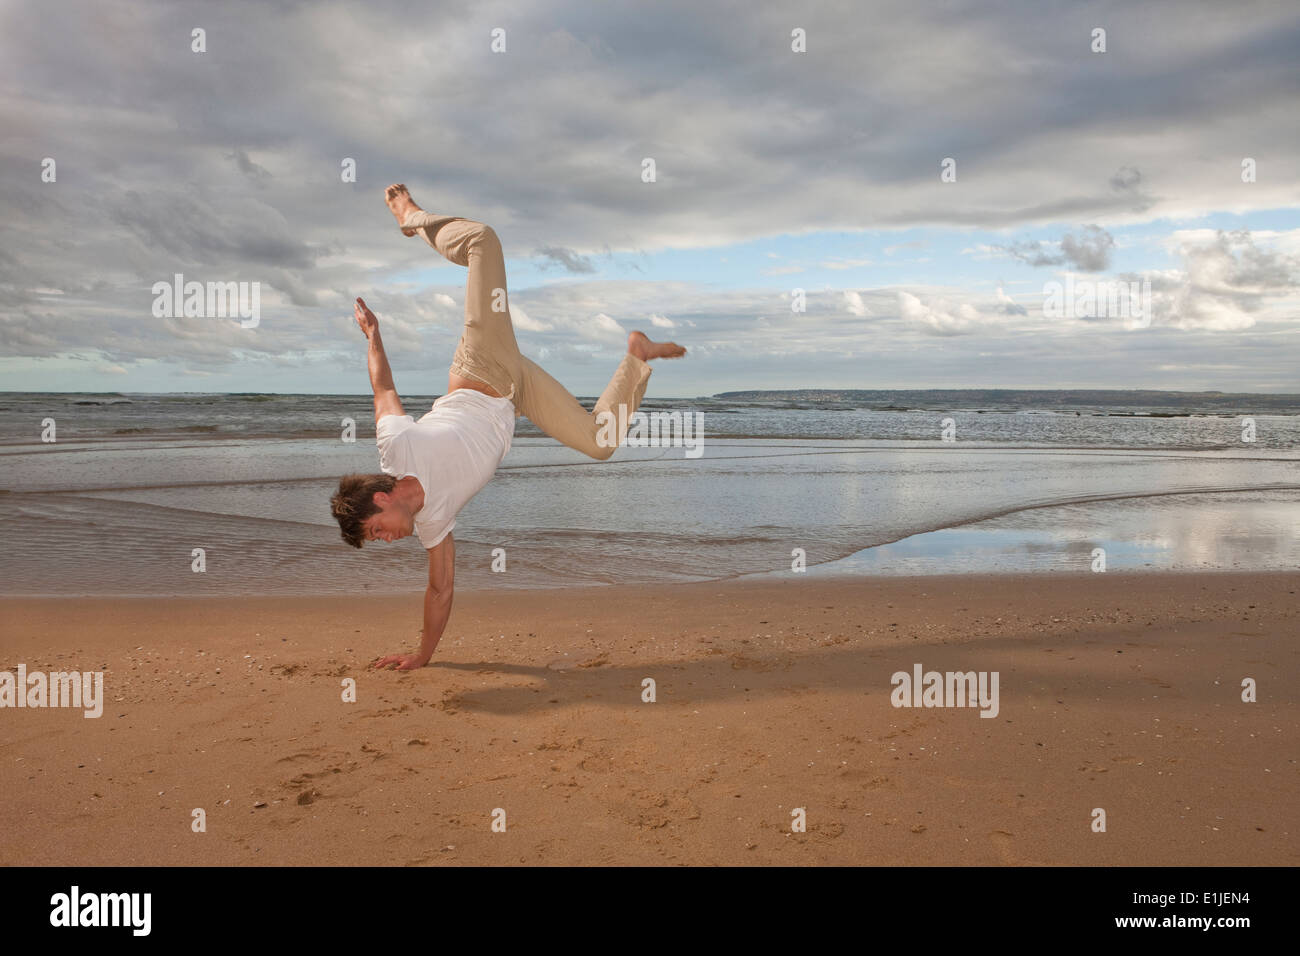 Young man doing handstand on beach - Stock Image